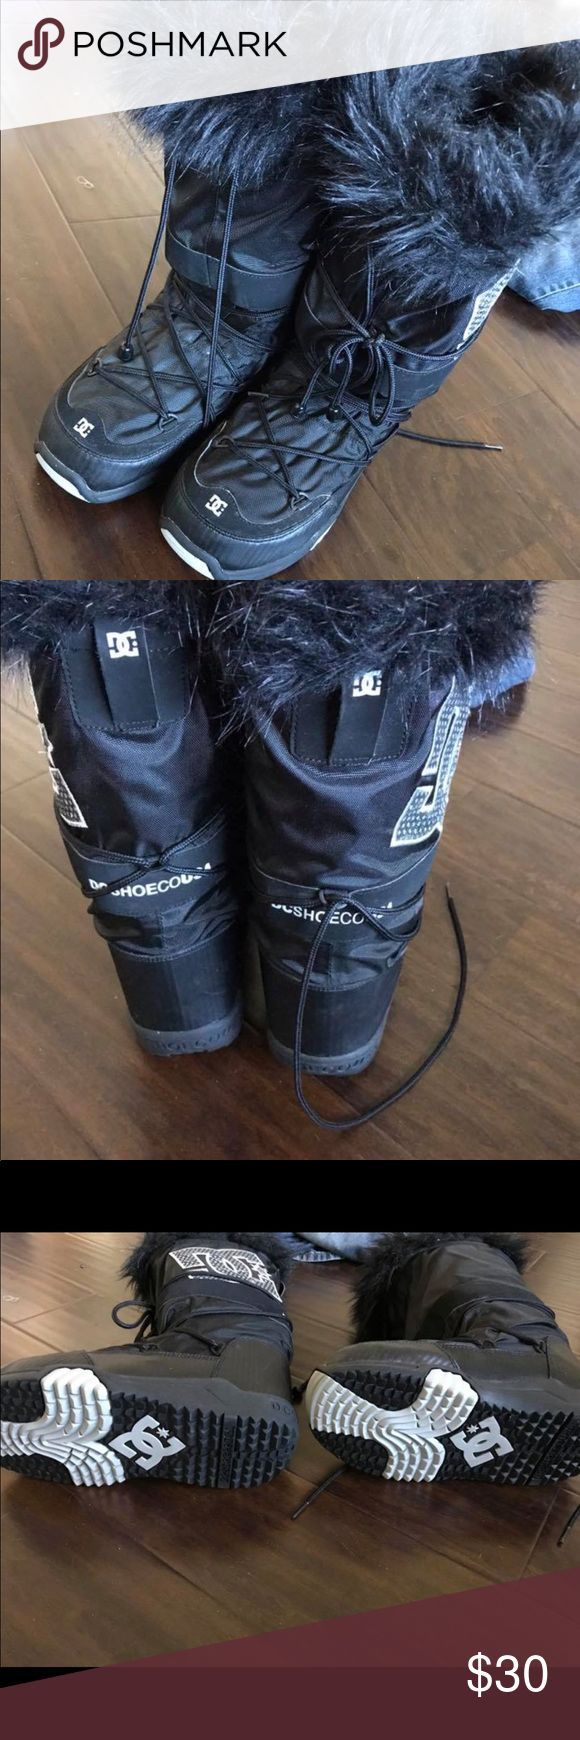 DC Snow boots Used a handful of times. Size L (8-9.5) DC Shoes Winter & Rain Boots